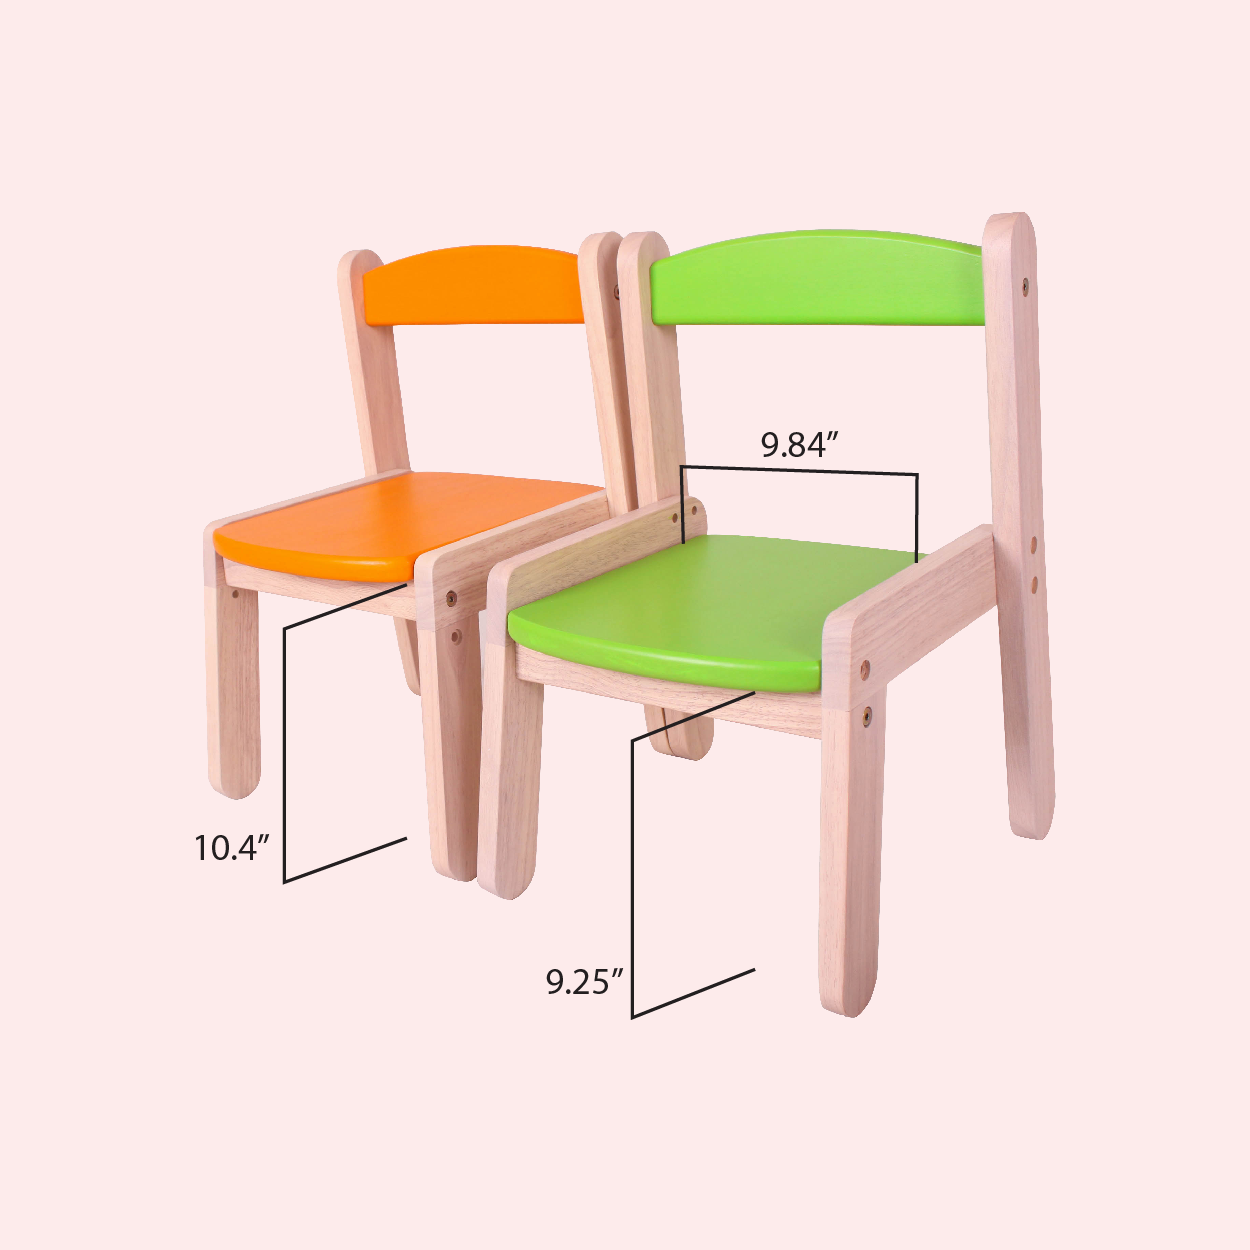 children's furniture, kid's chairs, wooden chairs